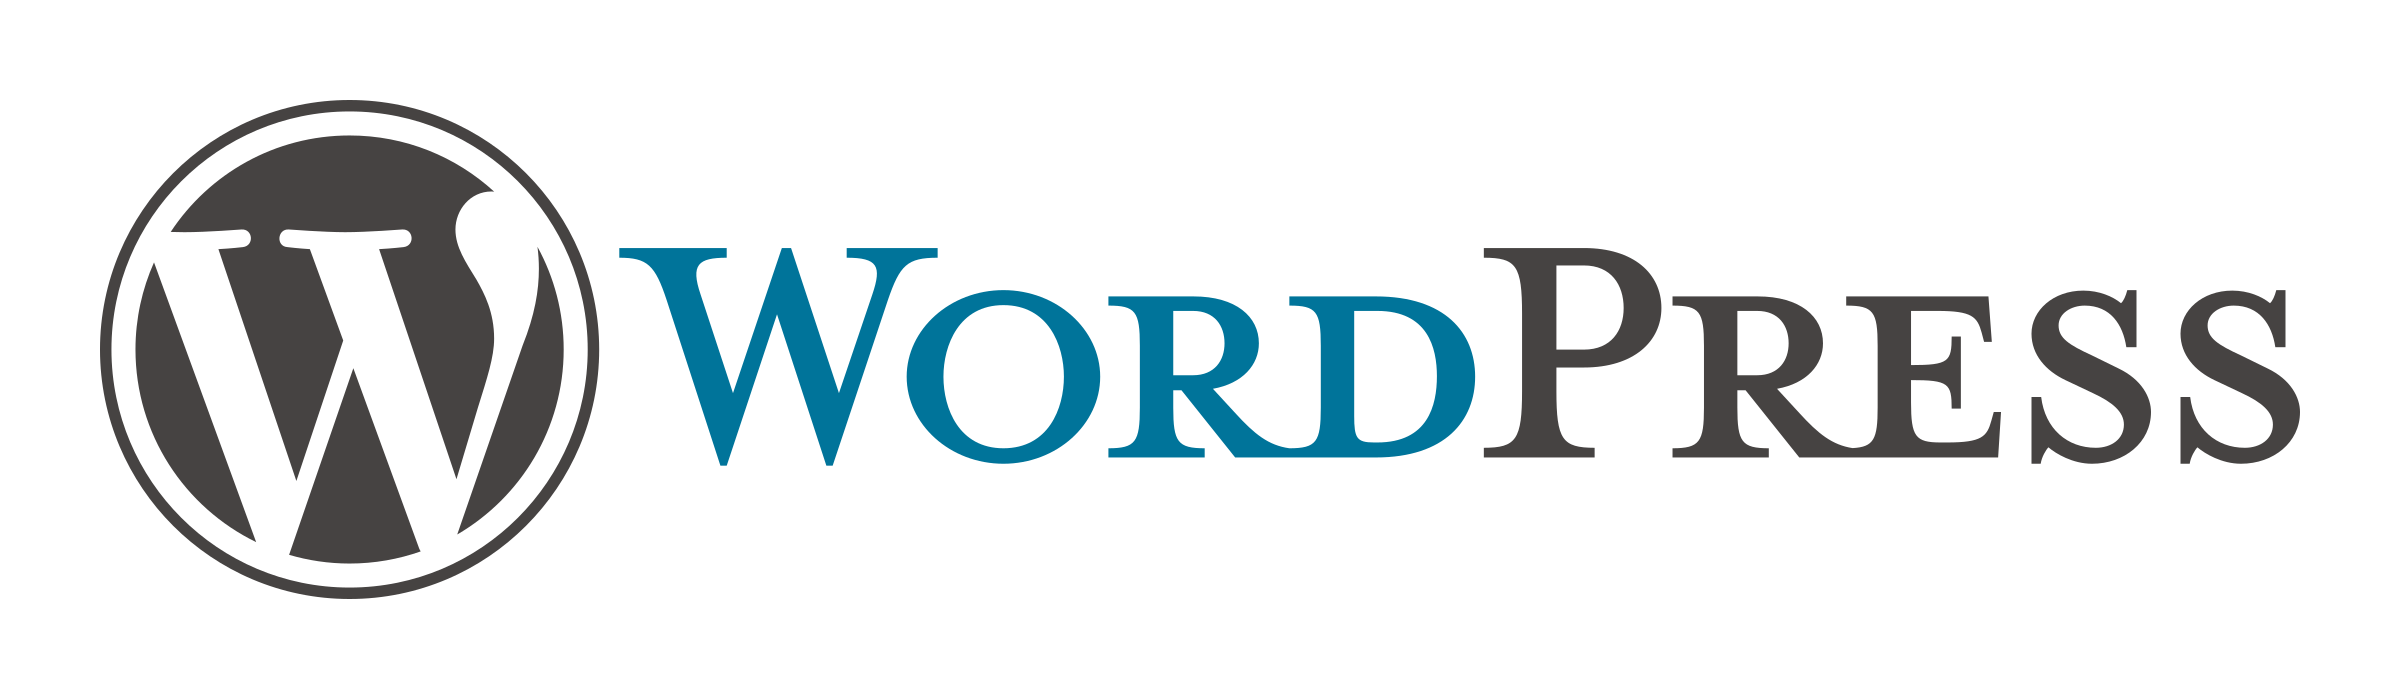 wordpress-logo-png-transparent